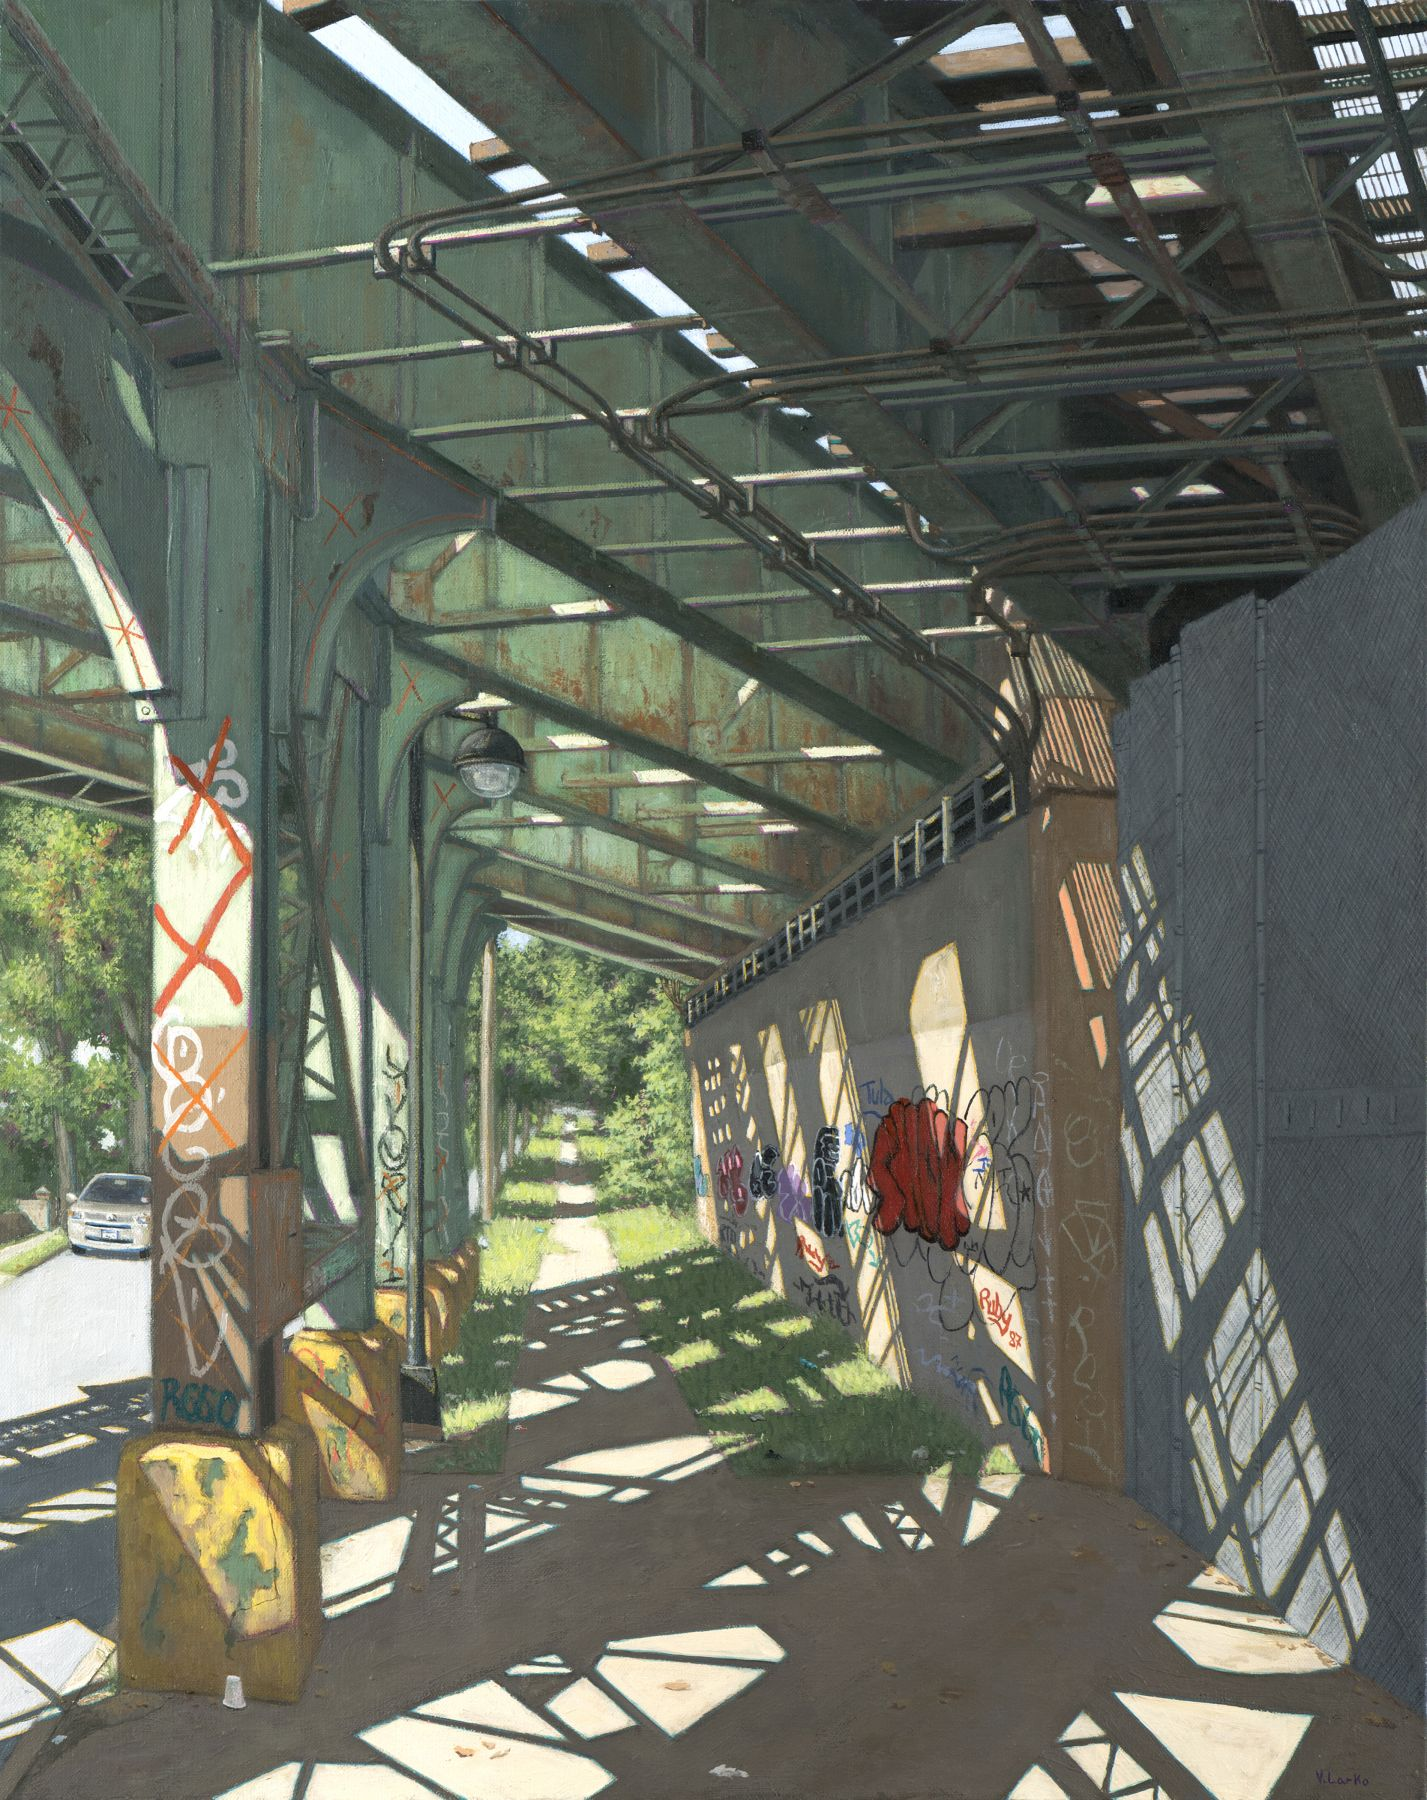 Valeri Larko painting titled Secor Ave Train Trestle, Bronx, 2019, oil on canvas, 30 x 24 inches imagery view of Secor Ave Train Trestle and sidewalk, Bronx